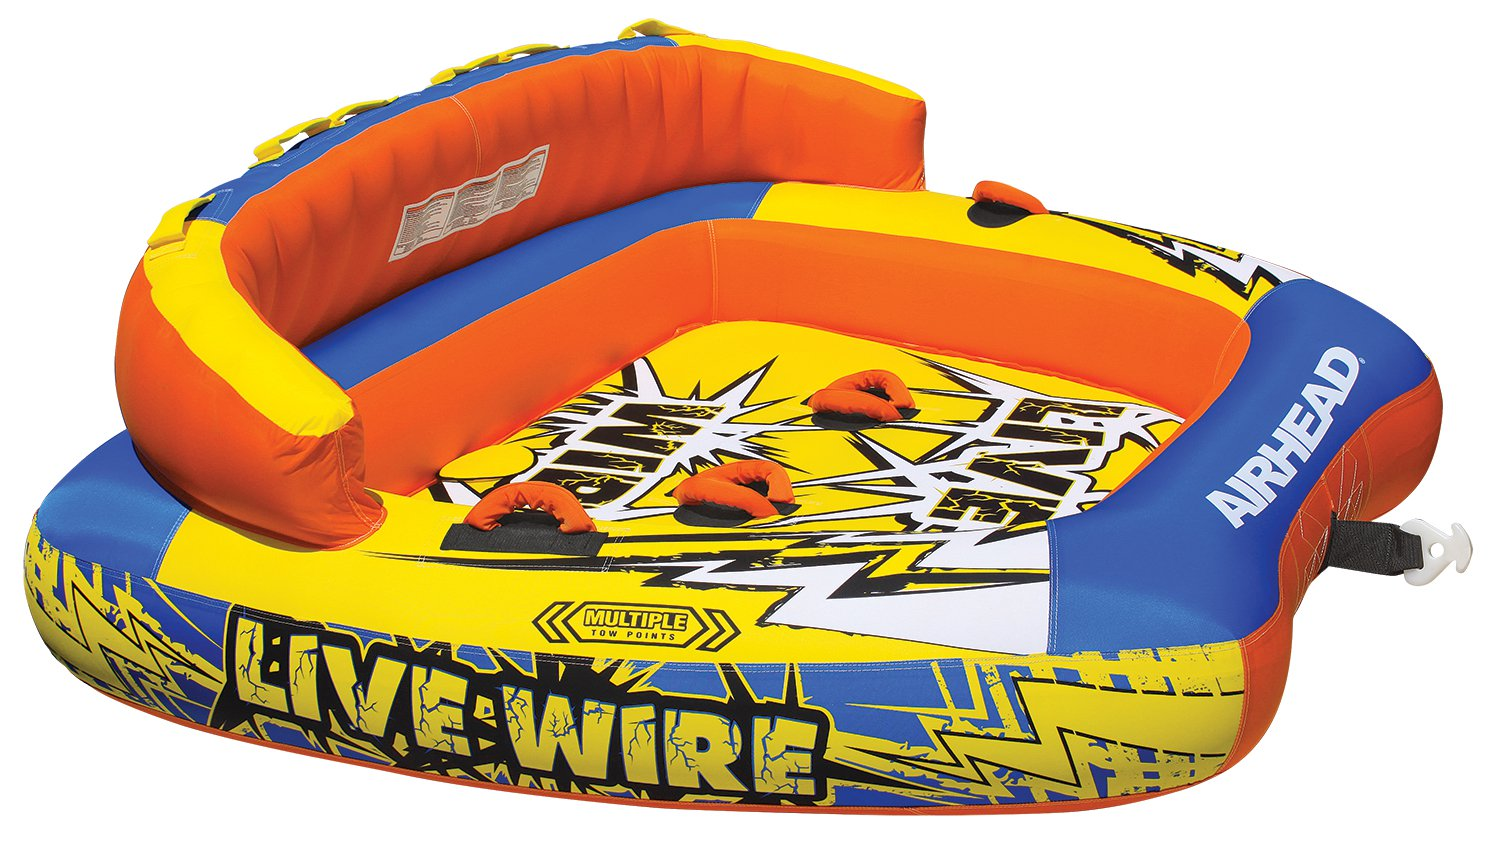 New AIRHEAD AHLW-3 Live Wire 3 Inflatable 1-3 Rider Boat Towable Lake Water Tube by